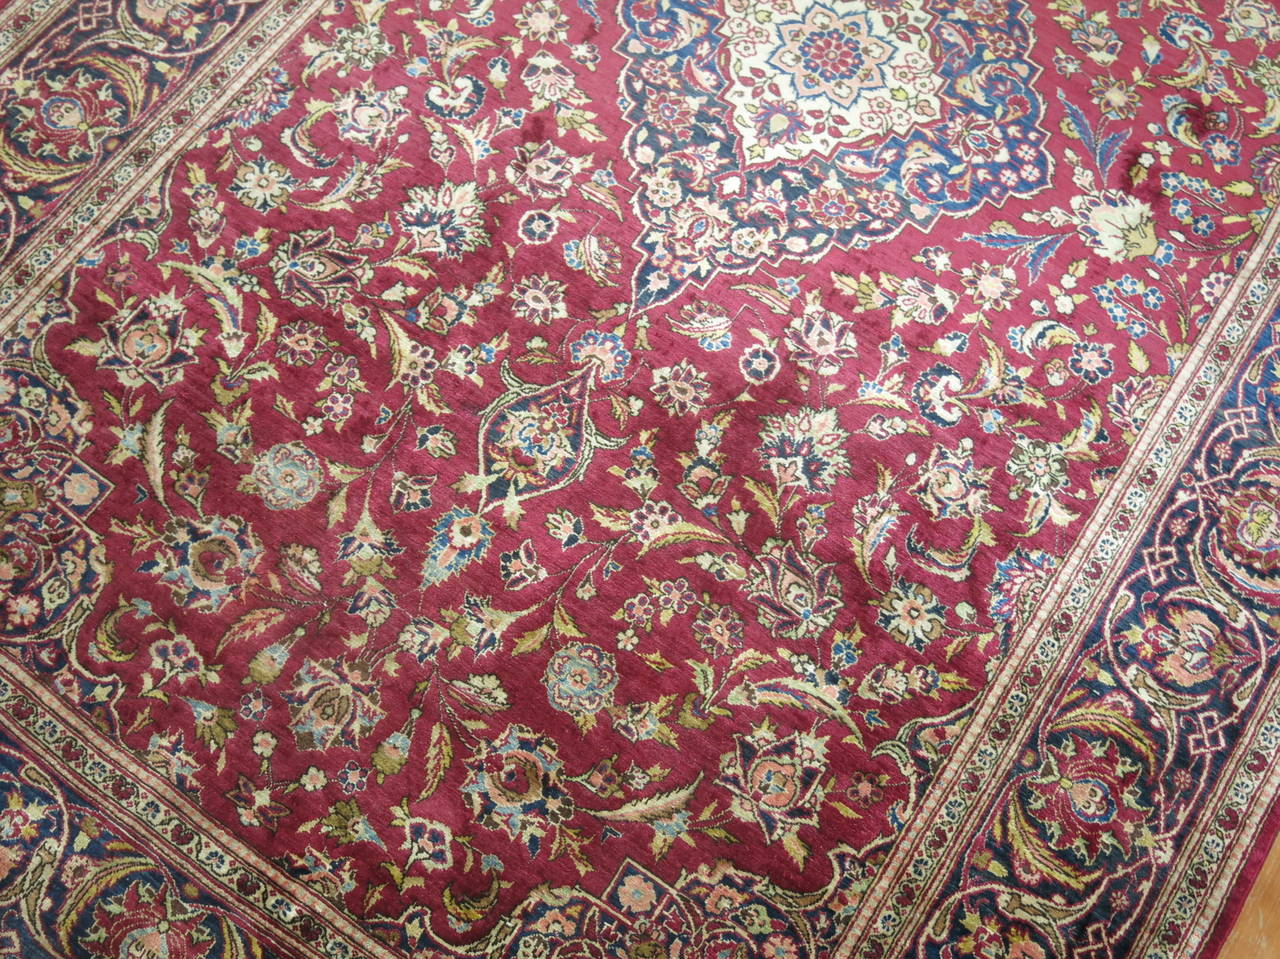 Cotton Antique Persian Silk Area Rug For Sale